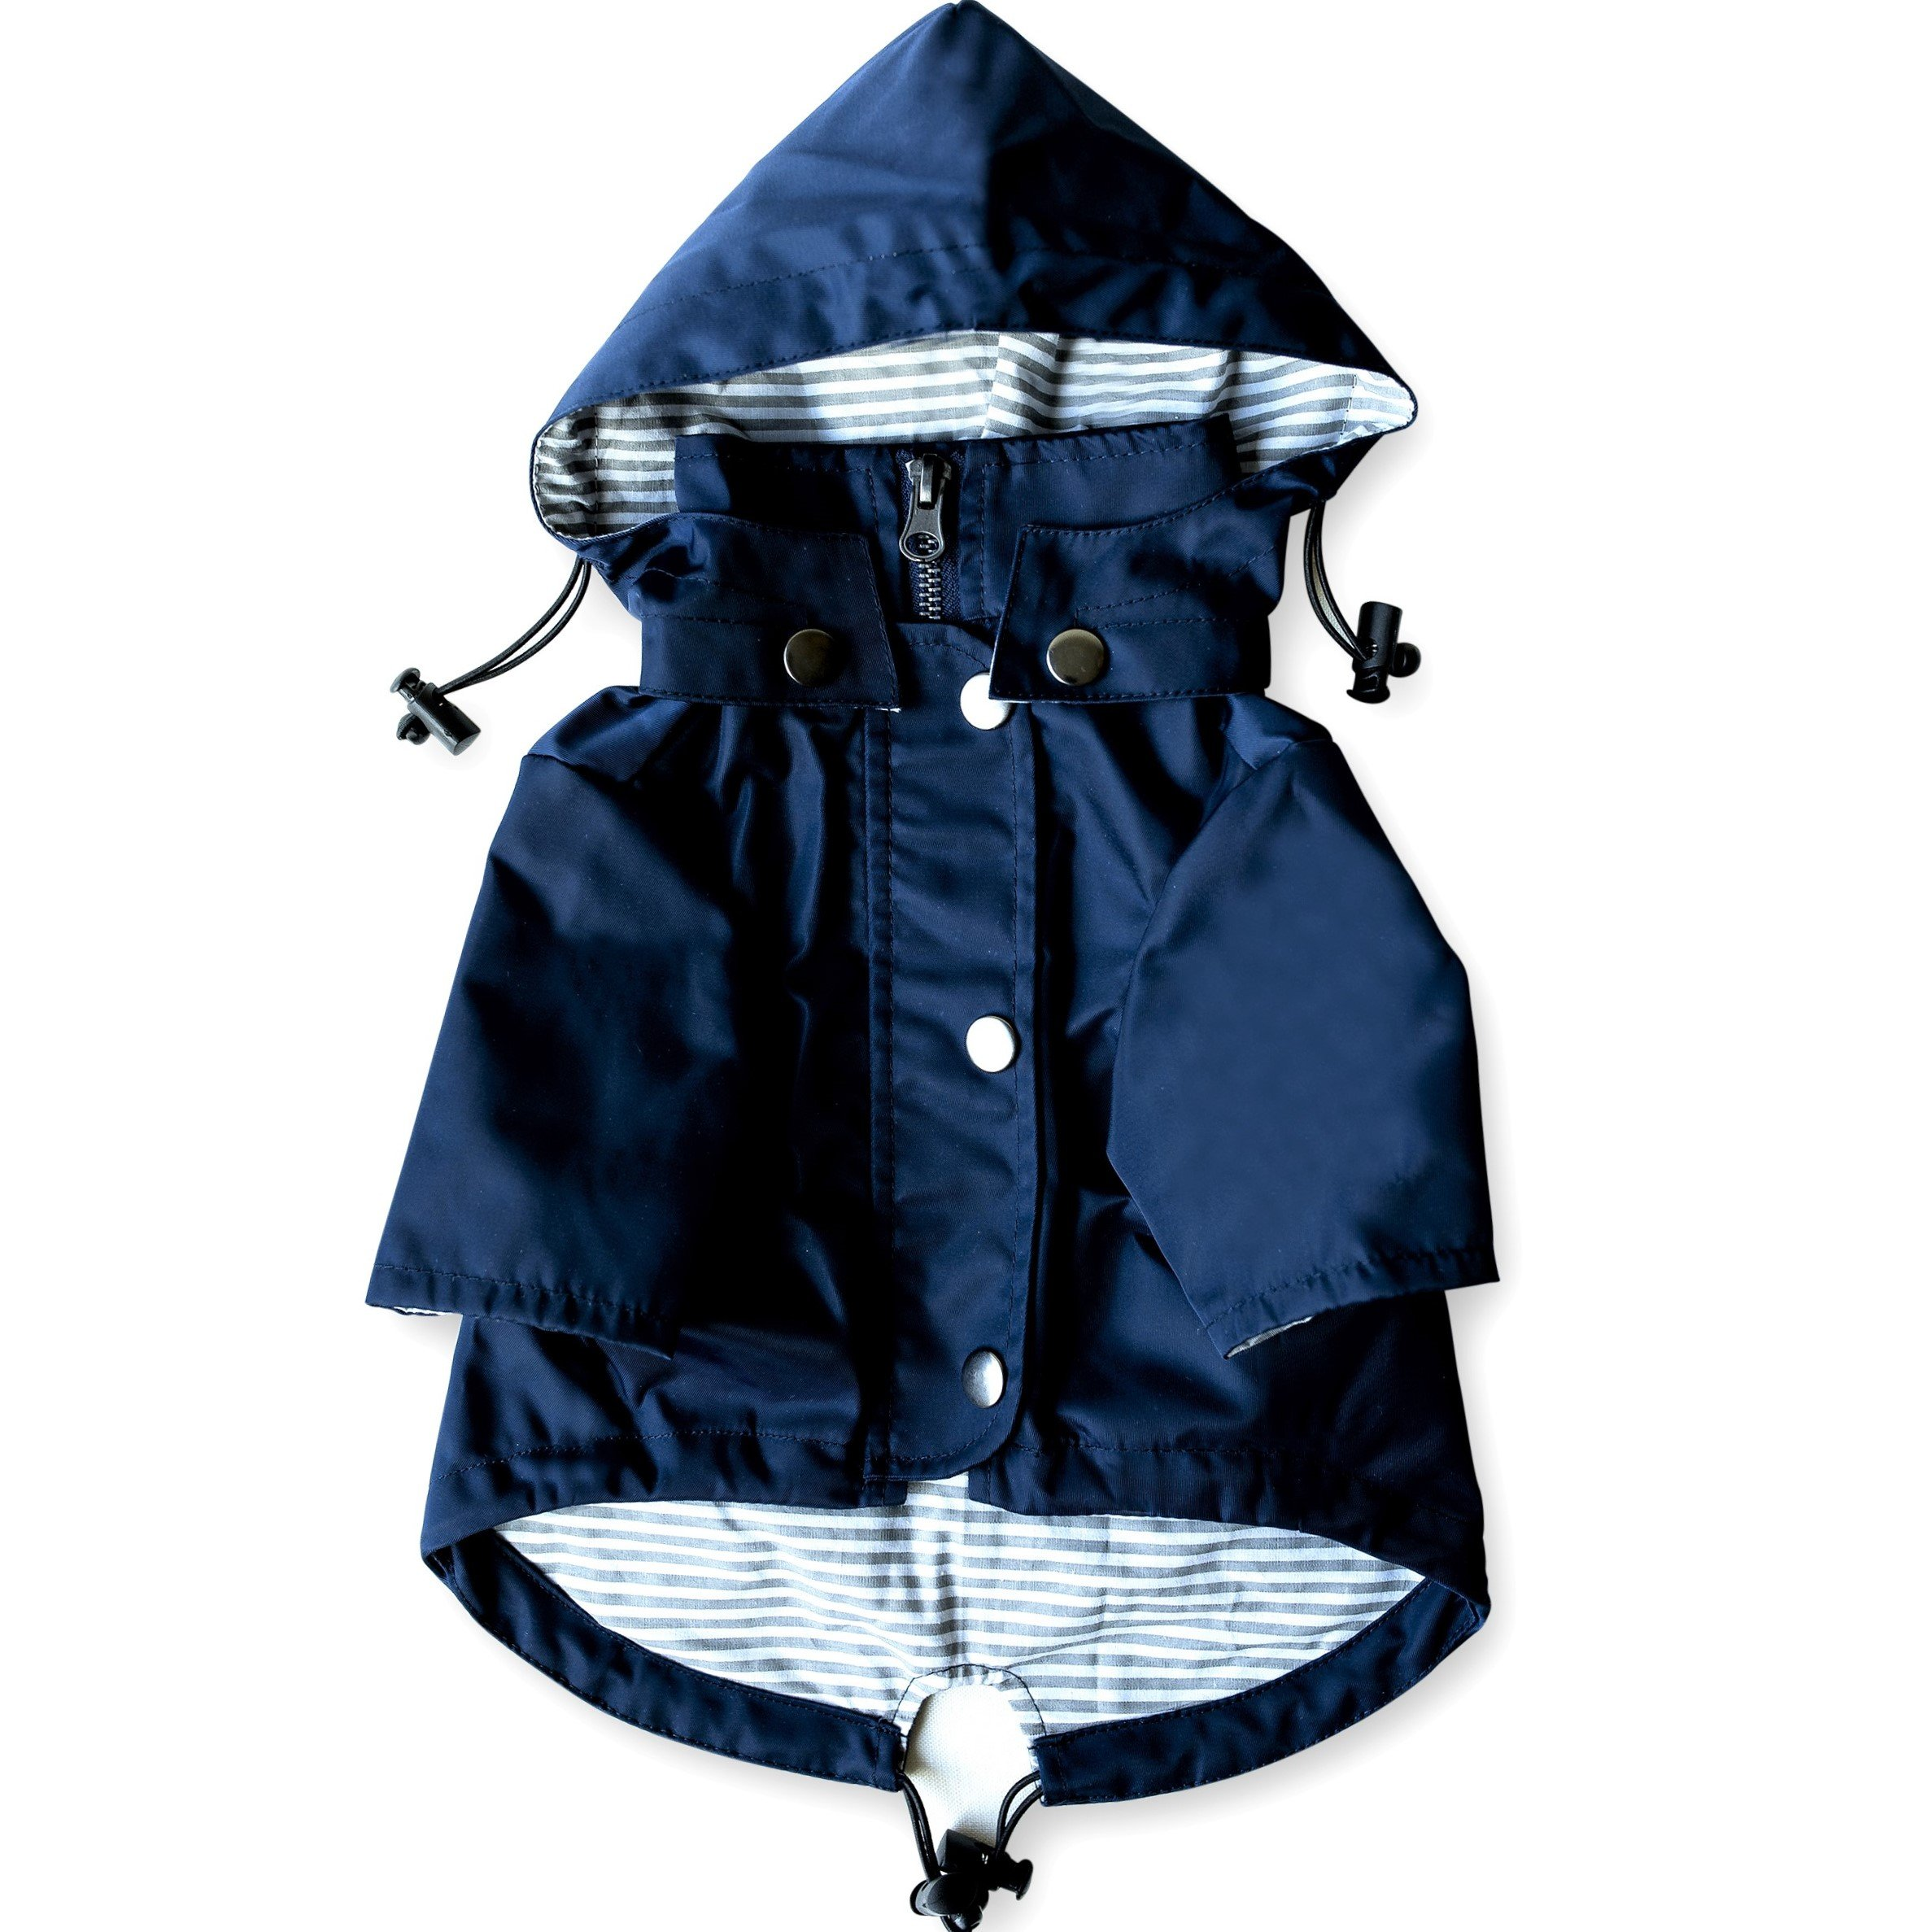 Navy Blue Zip Up Dog Raincoat with Reflective Buttons, Pockets, Rain/Water Resistant, Adjustable Drawstring, Removable Hood - Size XS to XXL Available - Stylish Premium Dog Raincoats by Ellie (L)